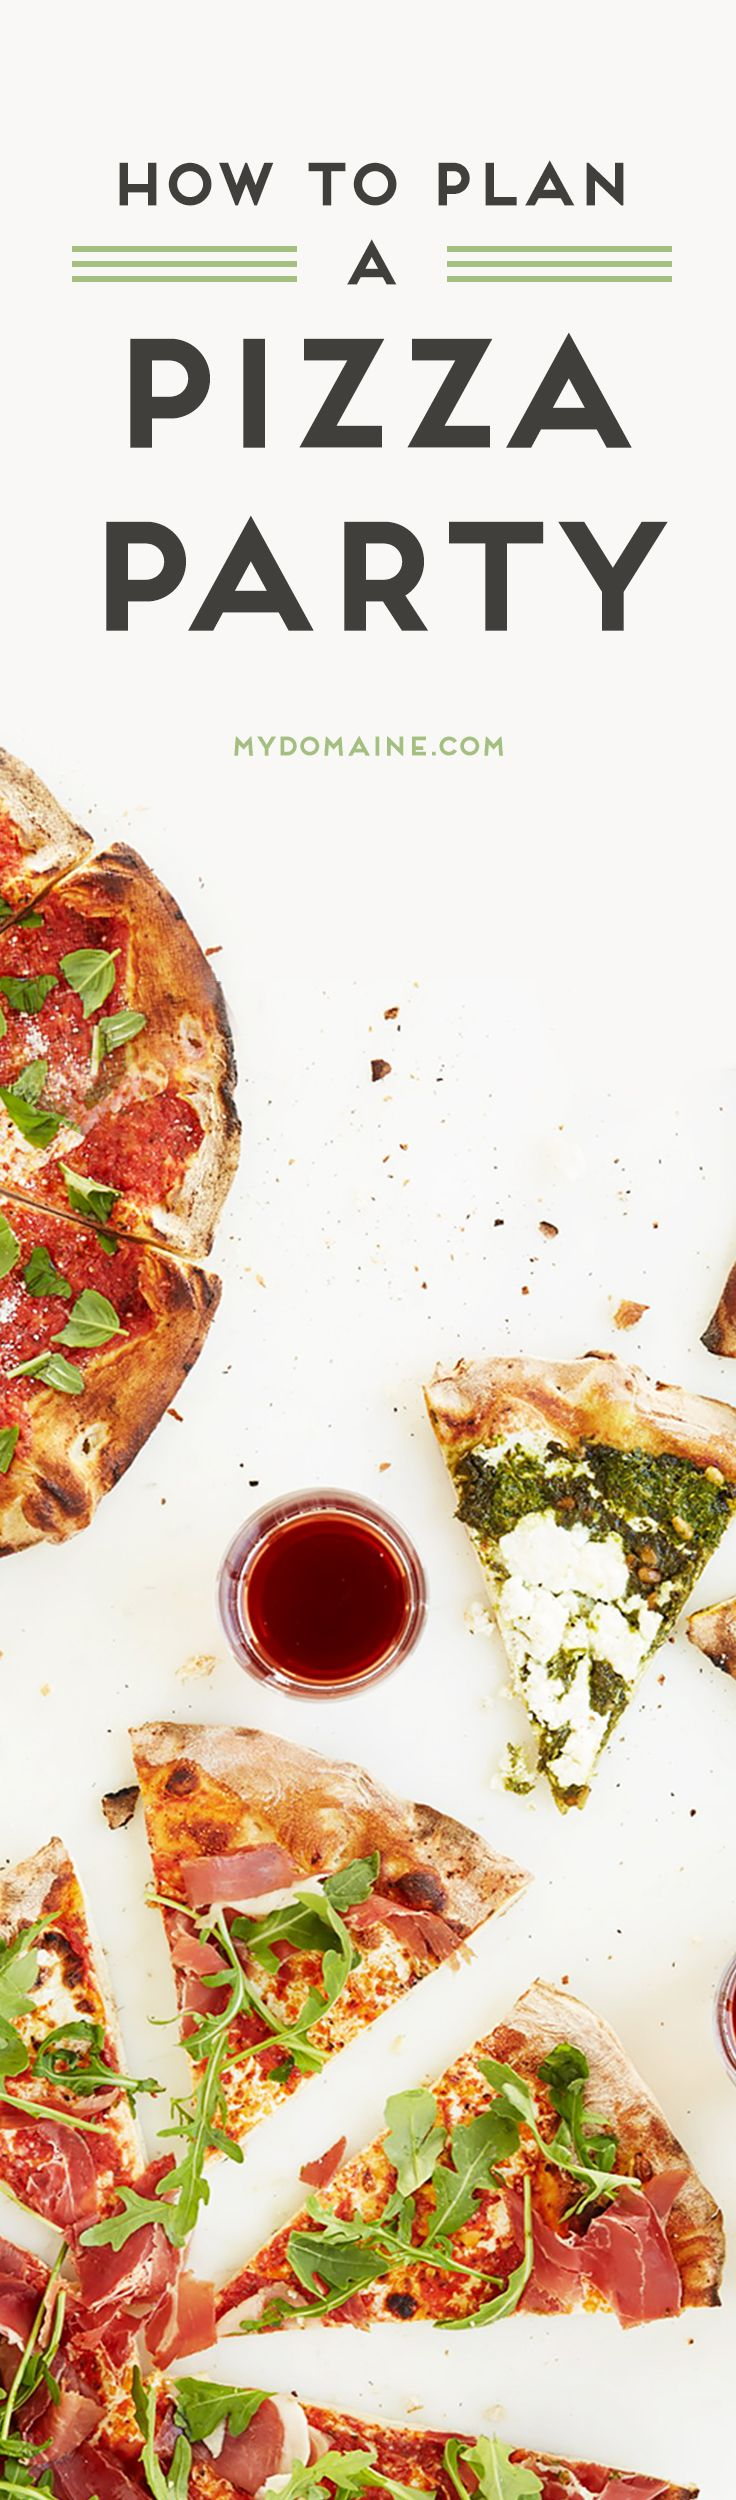 Everything You Need to Plan a Pizza Party   Pizza party, Pizzas and ...